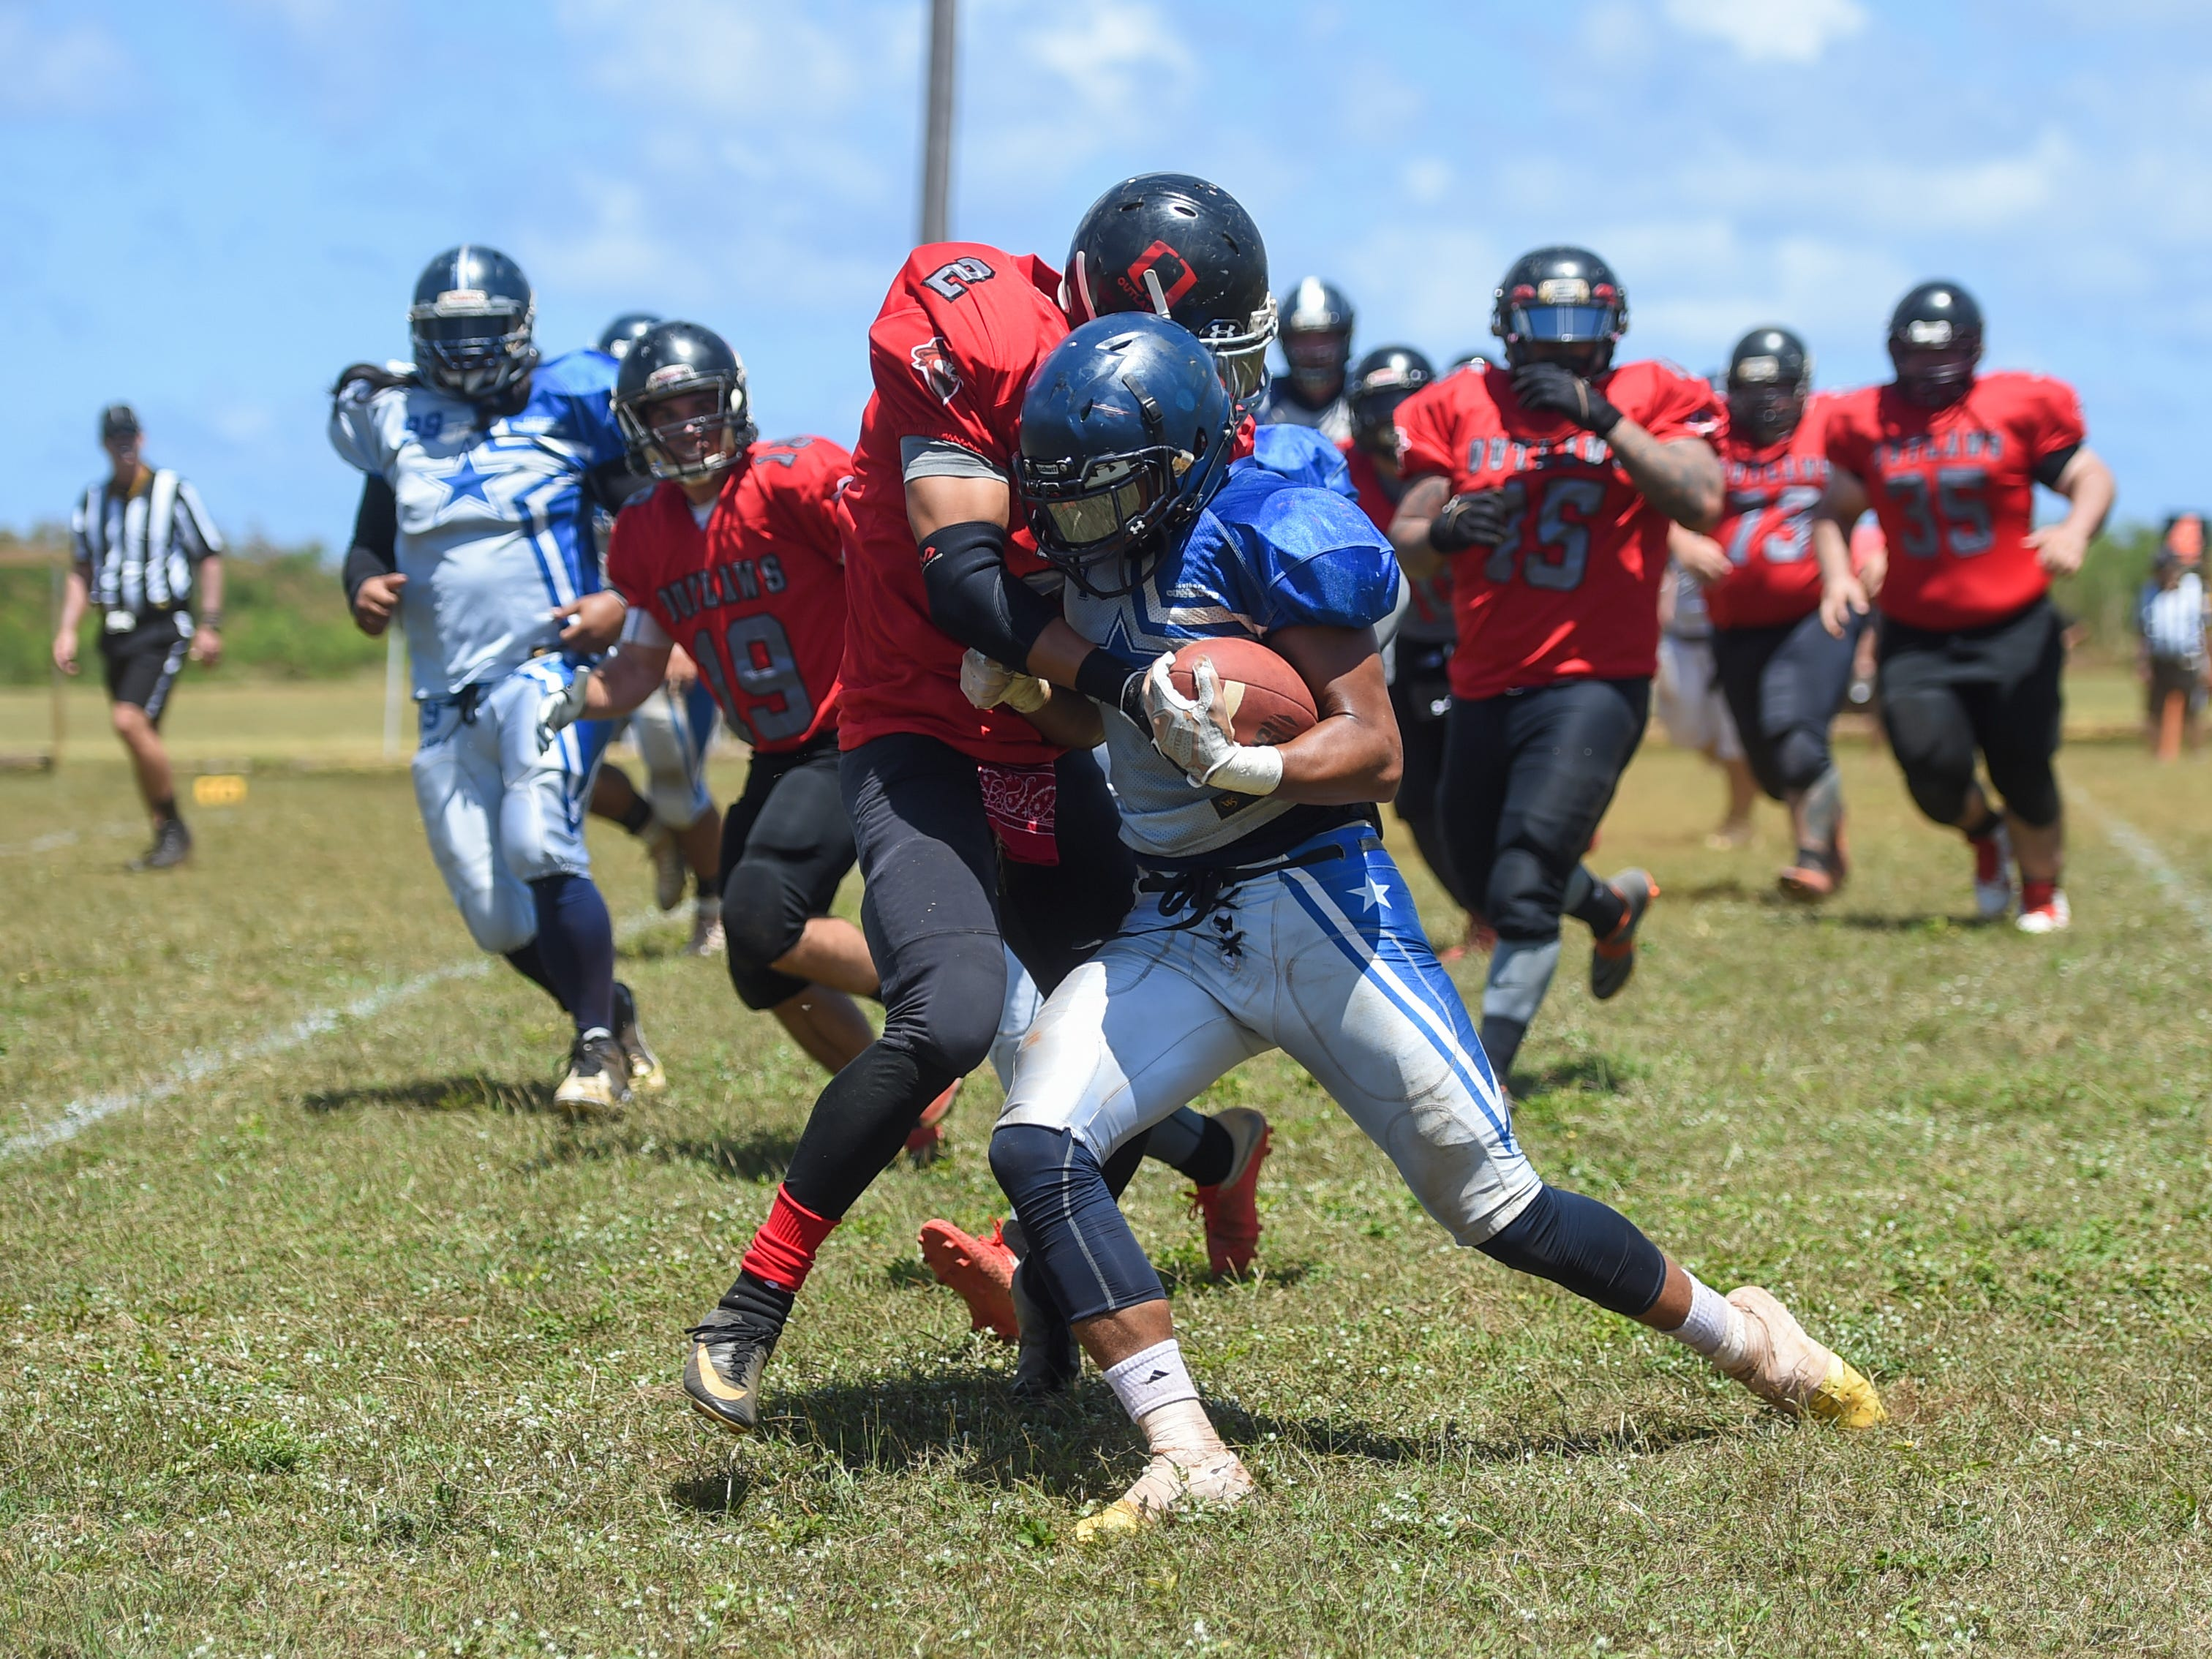 Outlaws player Joel Limtiaco (2) attempts to bring down the Southern Cowboys' Connie Toney during a Budweiser Guahan Varsity Football League game at Eagles Field in Mangilao, March 9, 2019.